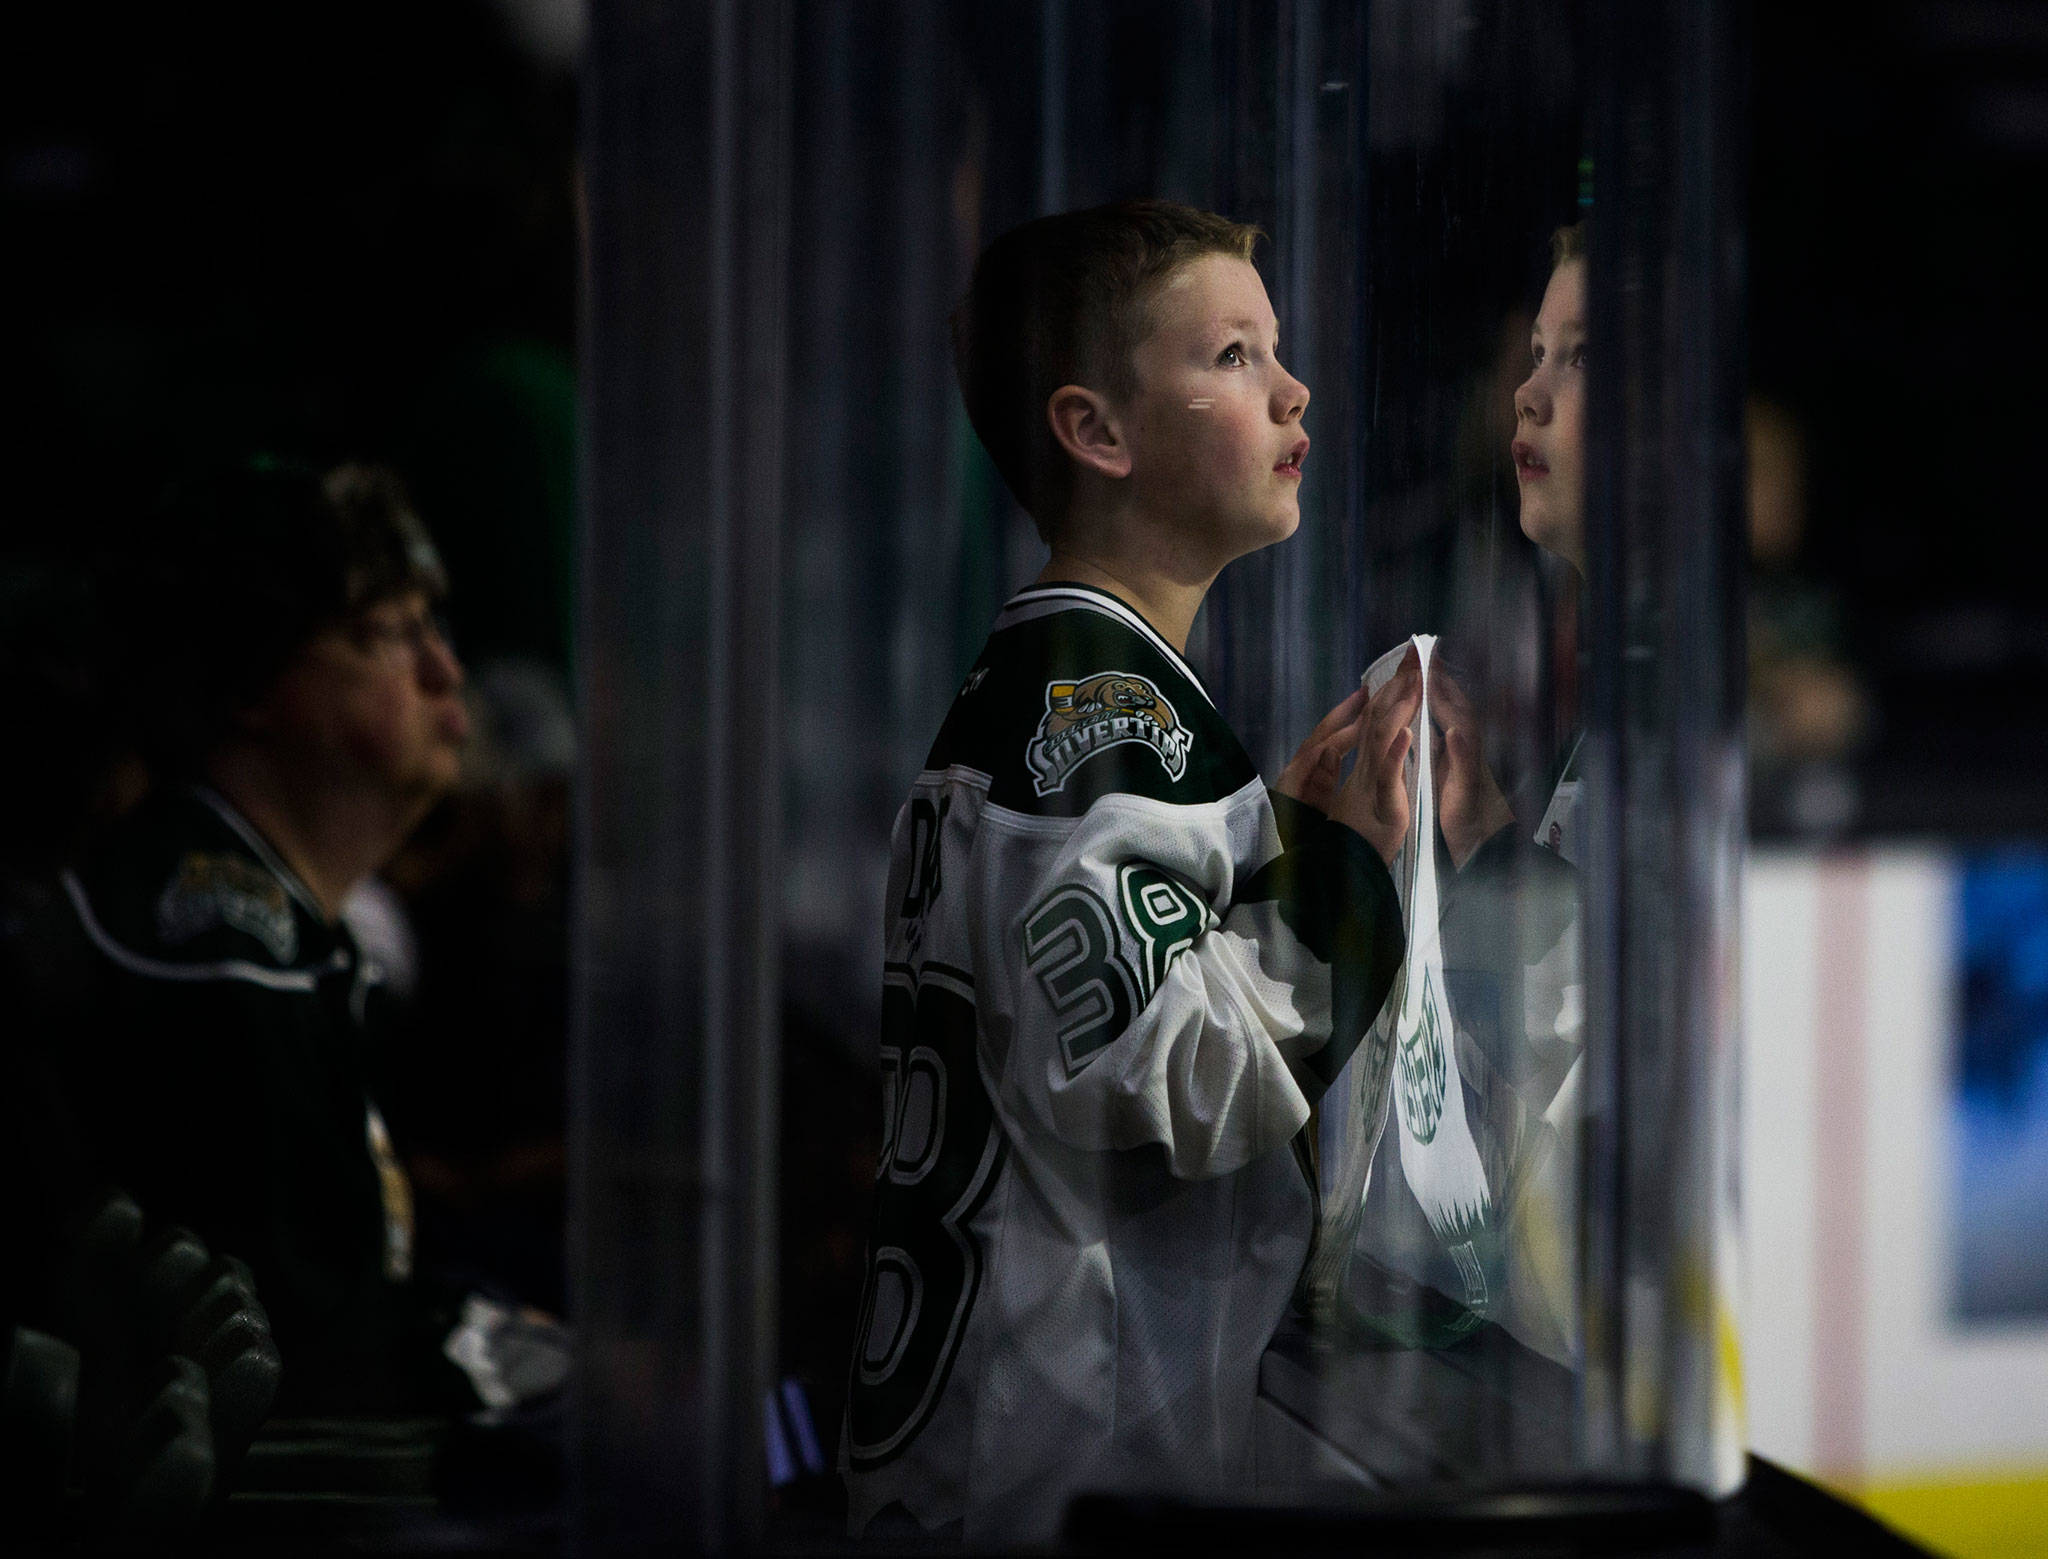 A young Silvertips' fan looks up at the jumbotron before the game against the Spokane Chiefs on Sunday, Nov. 18, 2018 in Everett, Wa. (Olivia Vanni / The Herald)